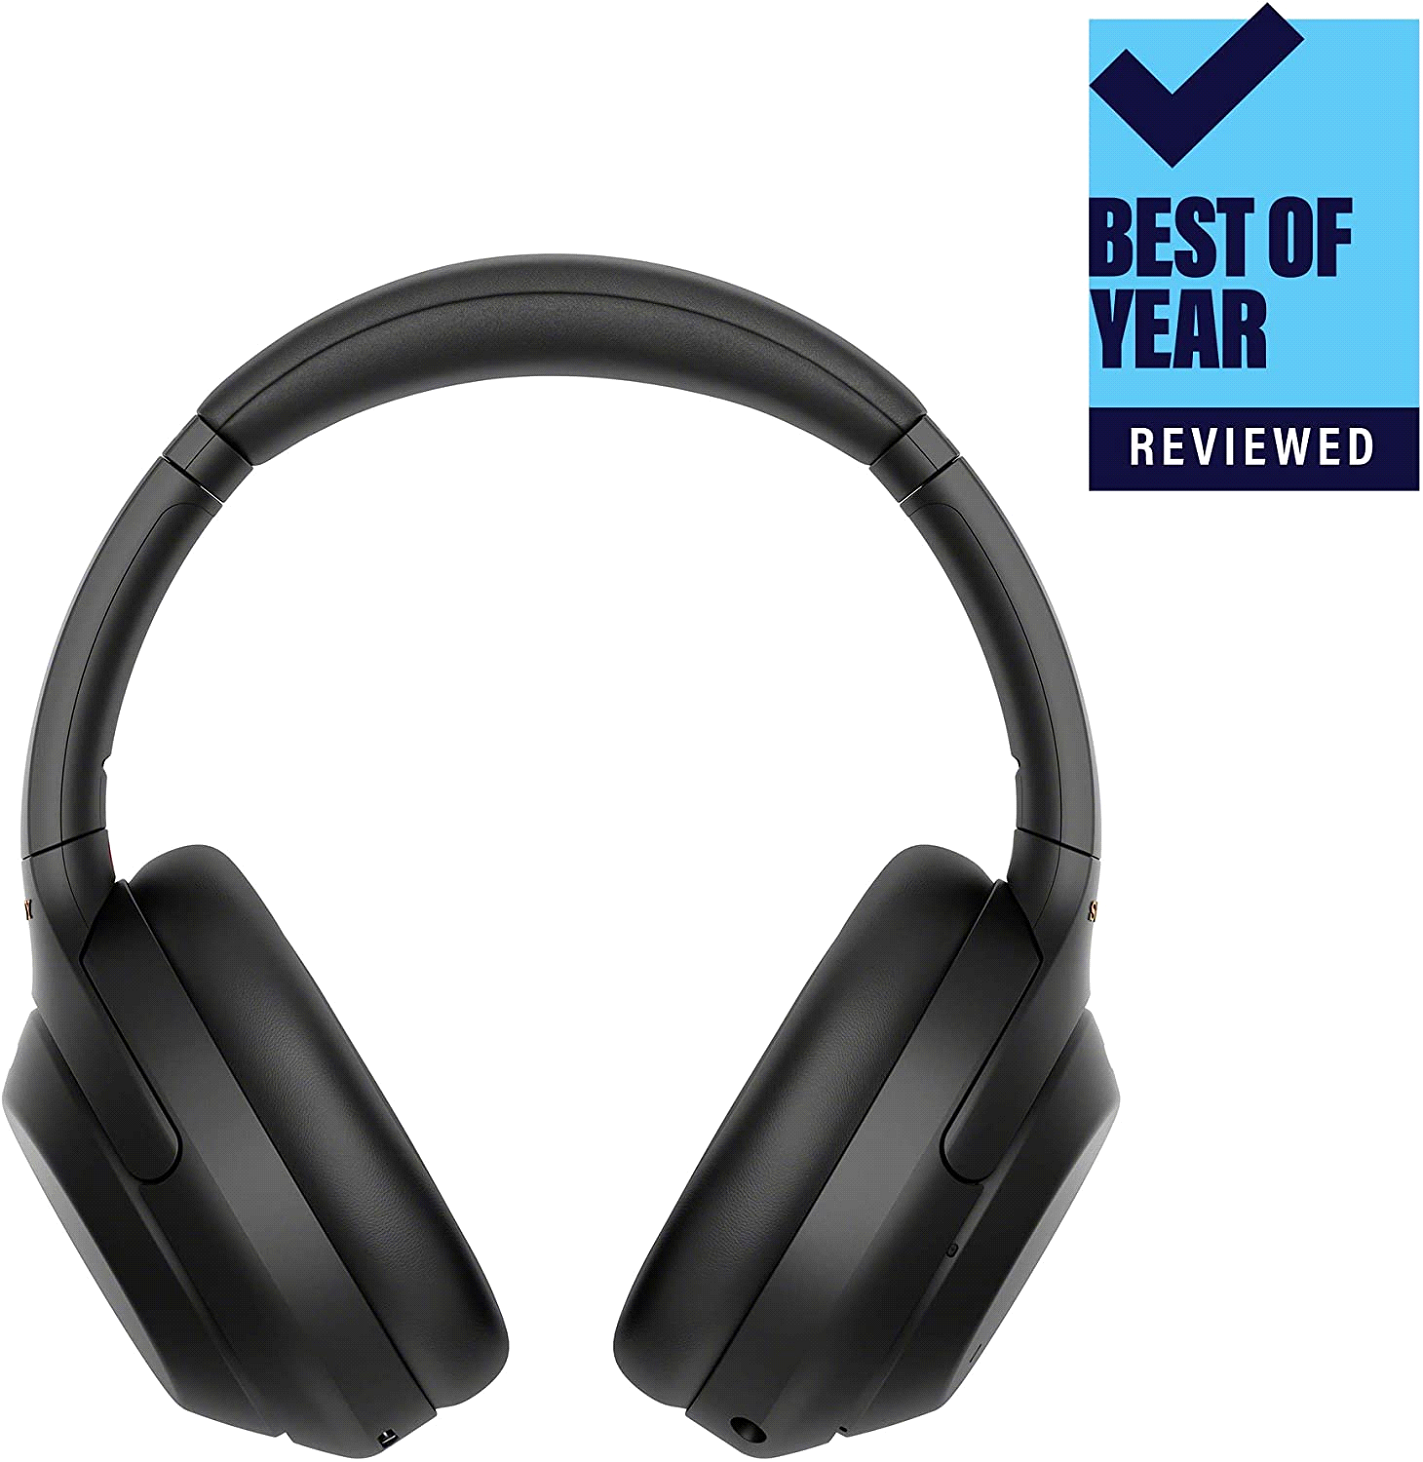 The SONY WH-1000XM4 headphones have advanced multipoint support